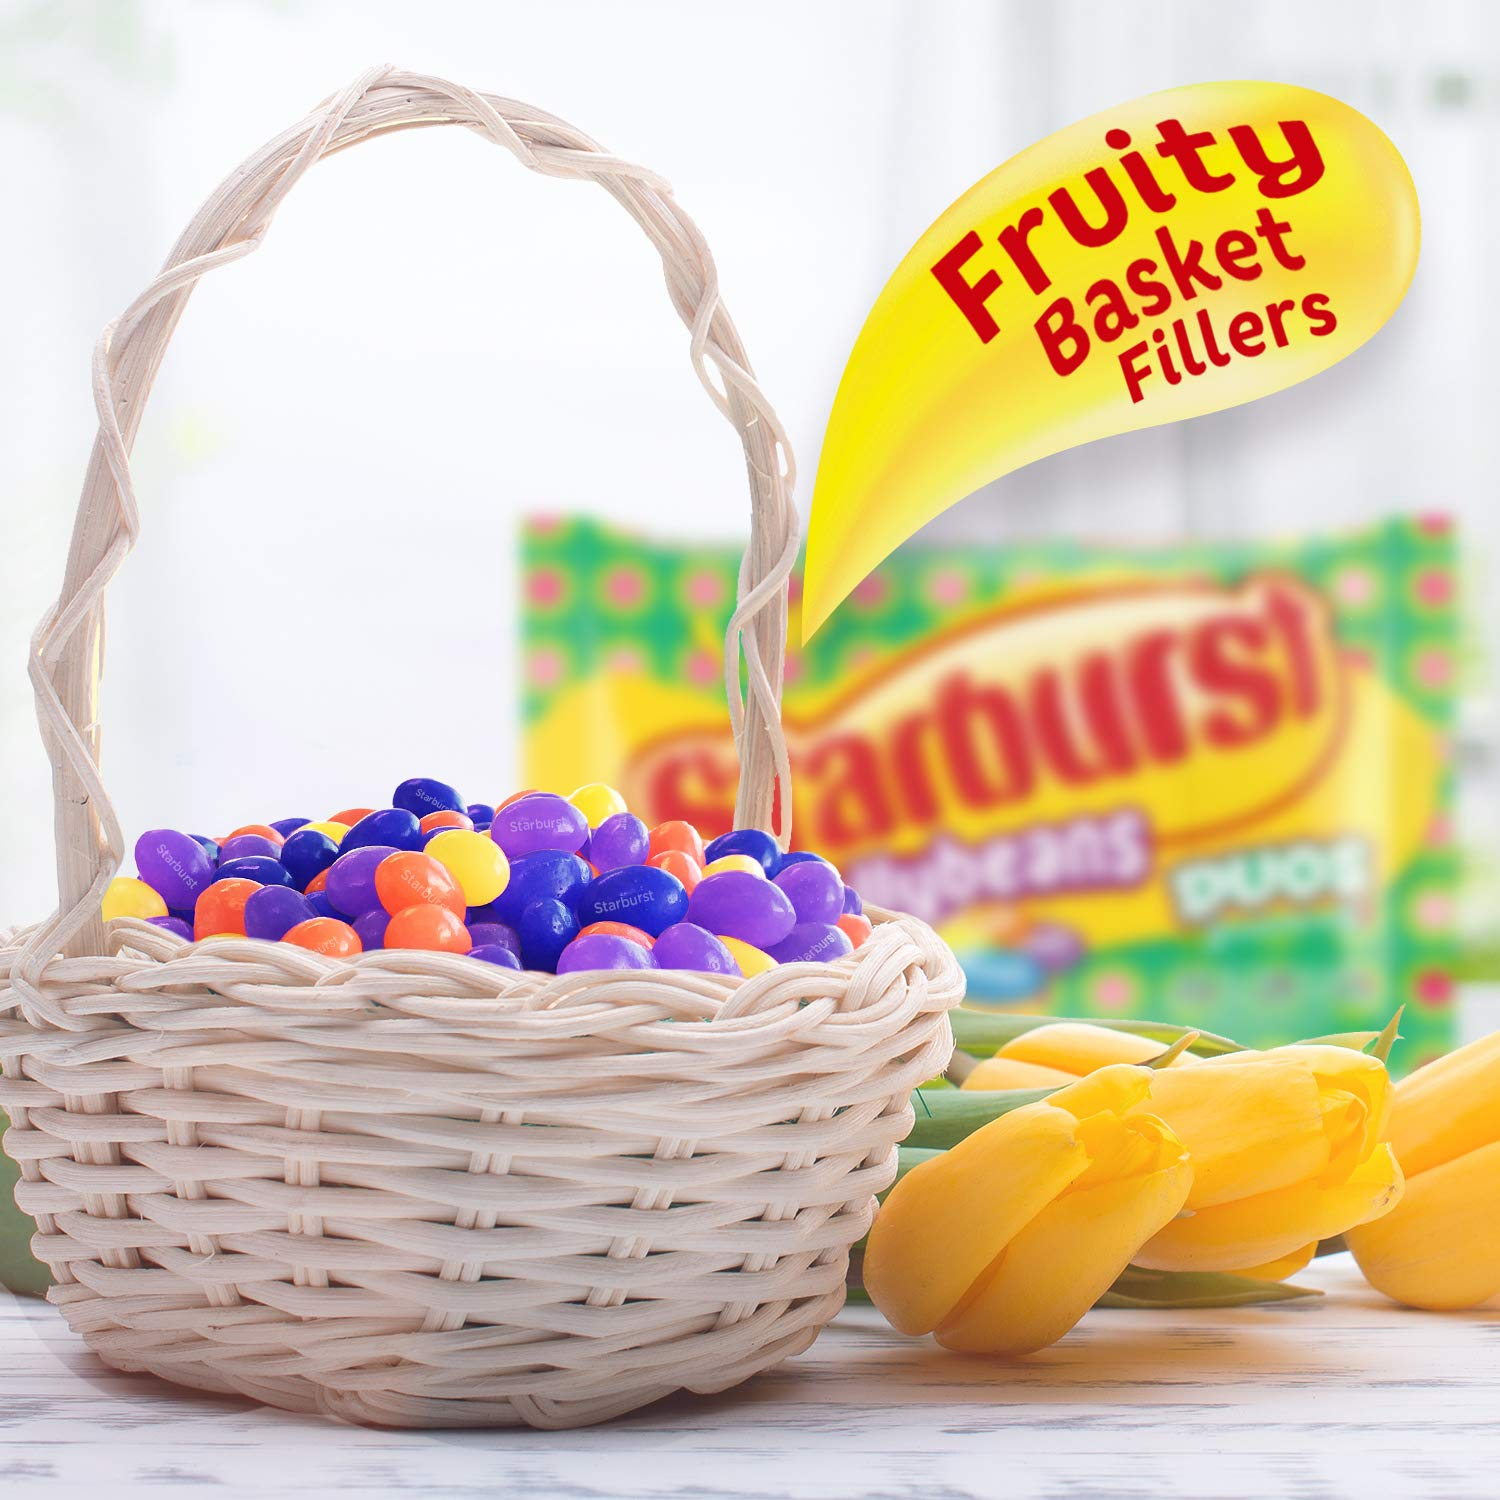 Starburst Easter Duos Jelly Beans Candy, 13 Ounce (Pack of 12) by Starburst (Image #5)